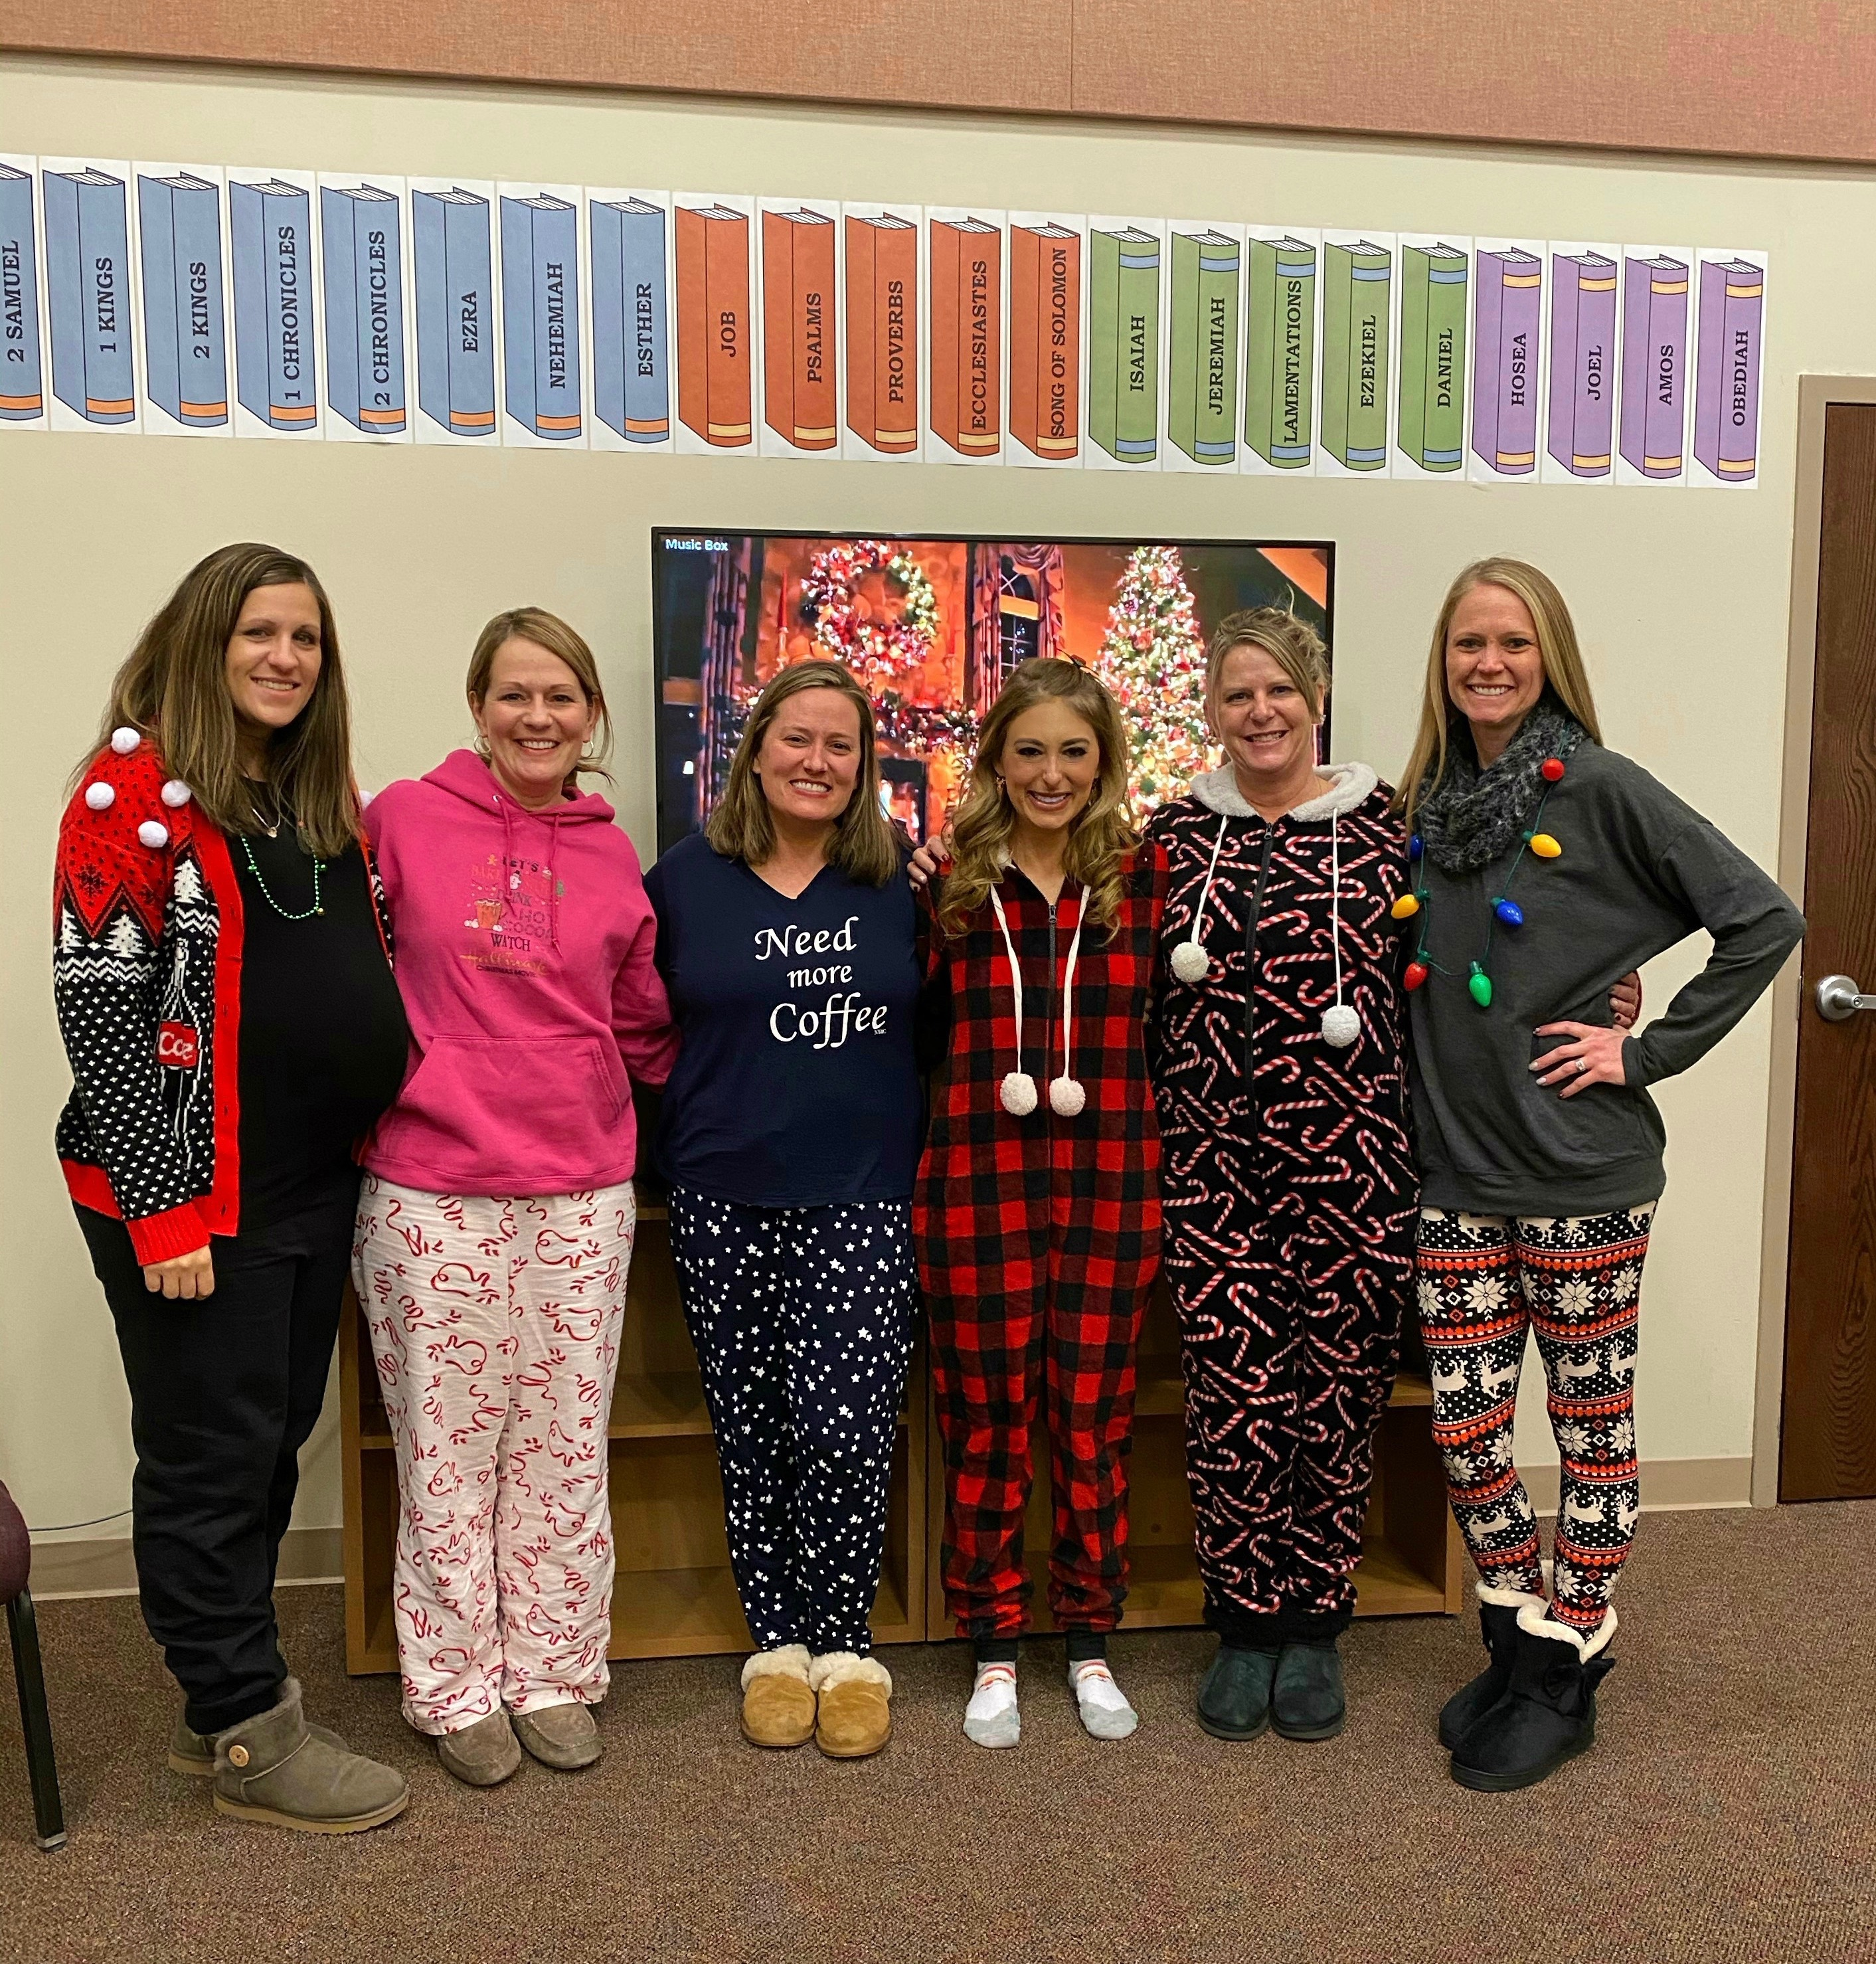 Group of women dressed in winter pajamas, color photo